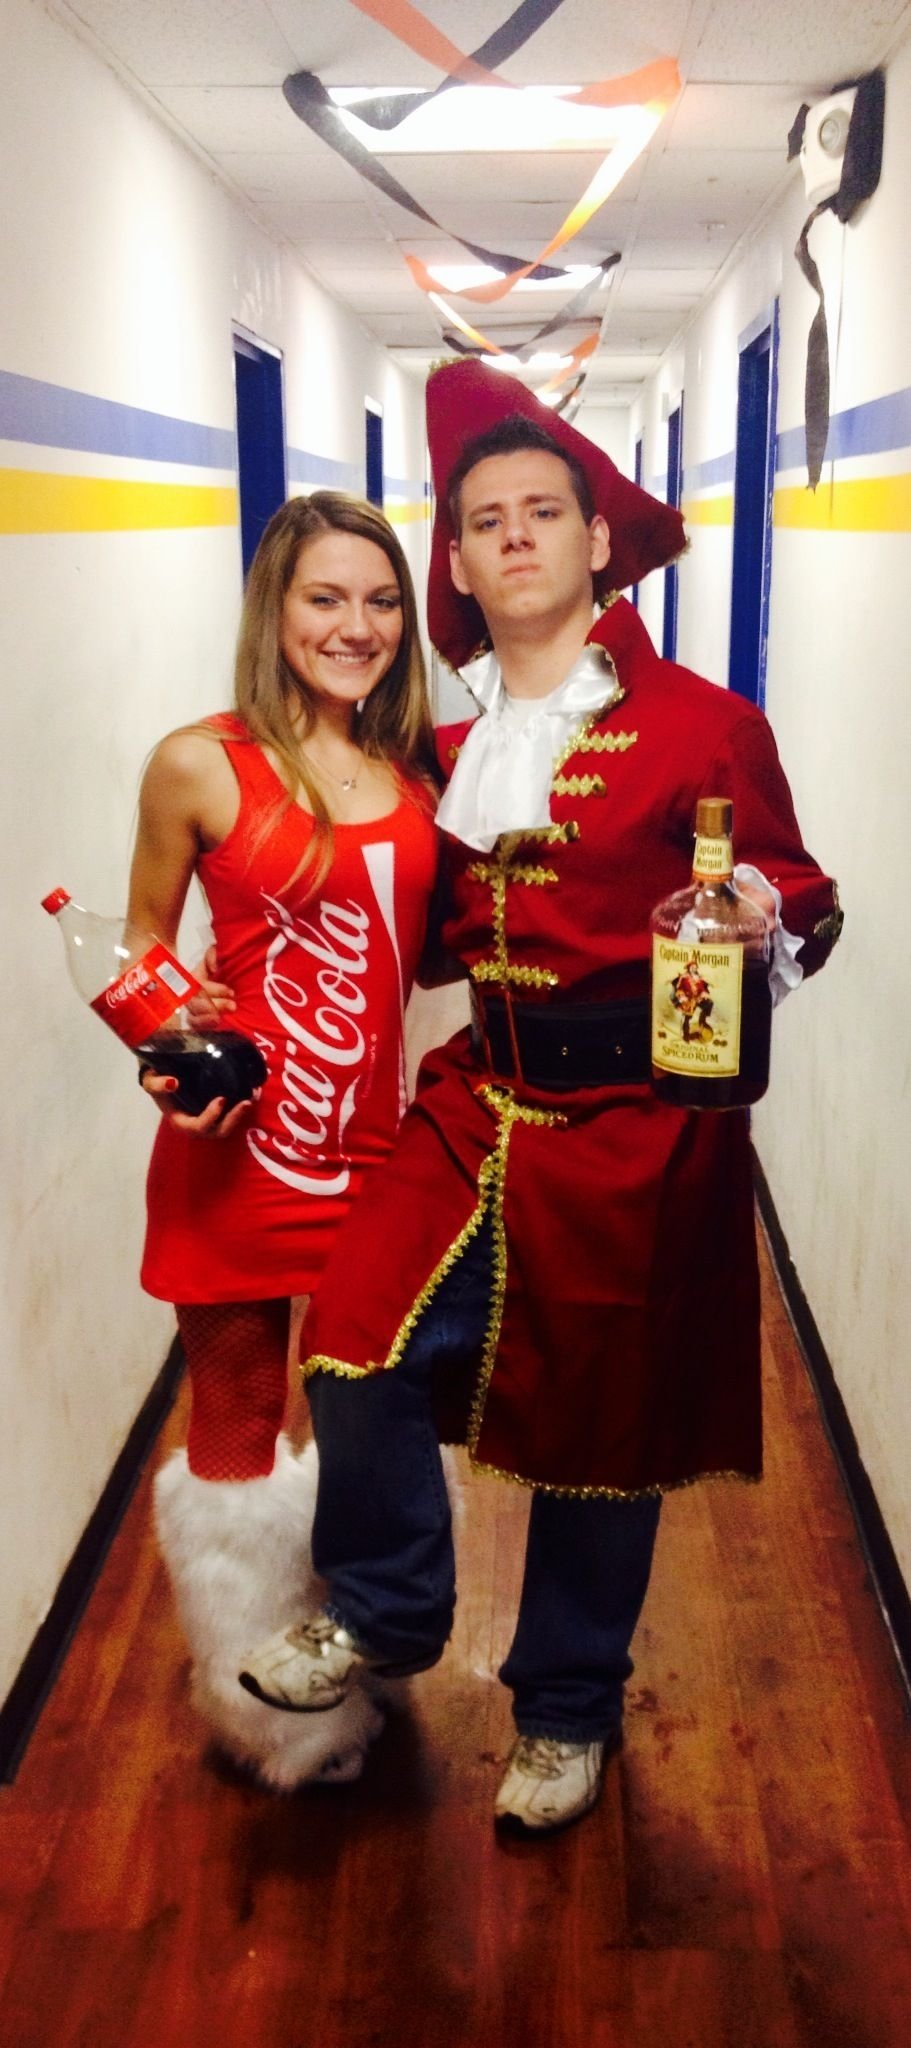 10 Stylish Unique Couples Halloween Costume Ideas disfruta del halloween en pareja estos son los disfraces mas 2020